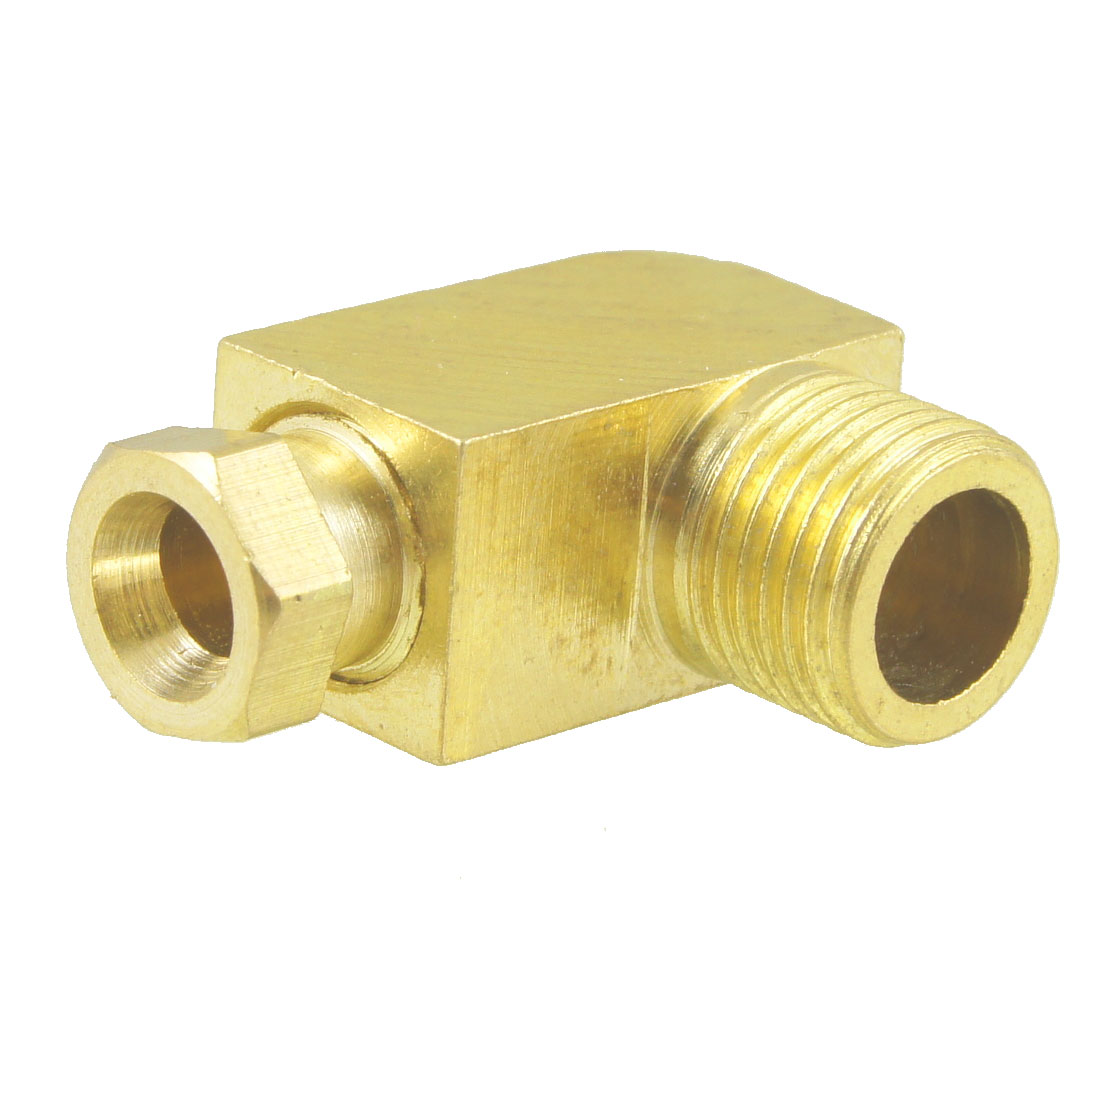 "4mm Hole Dia 1/8"" Male Thread 90 Degree Metal Hydraulic Grease Nipple Fitting"